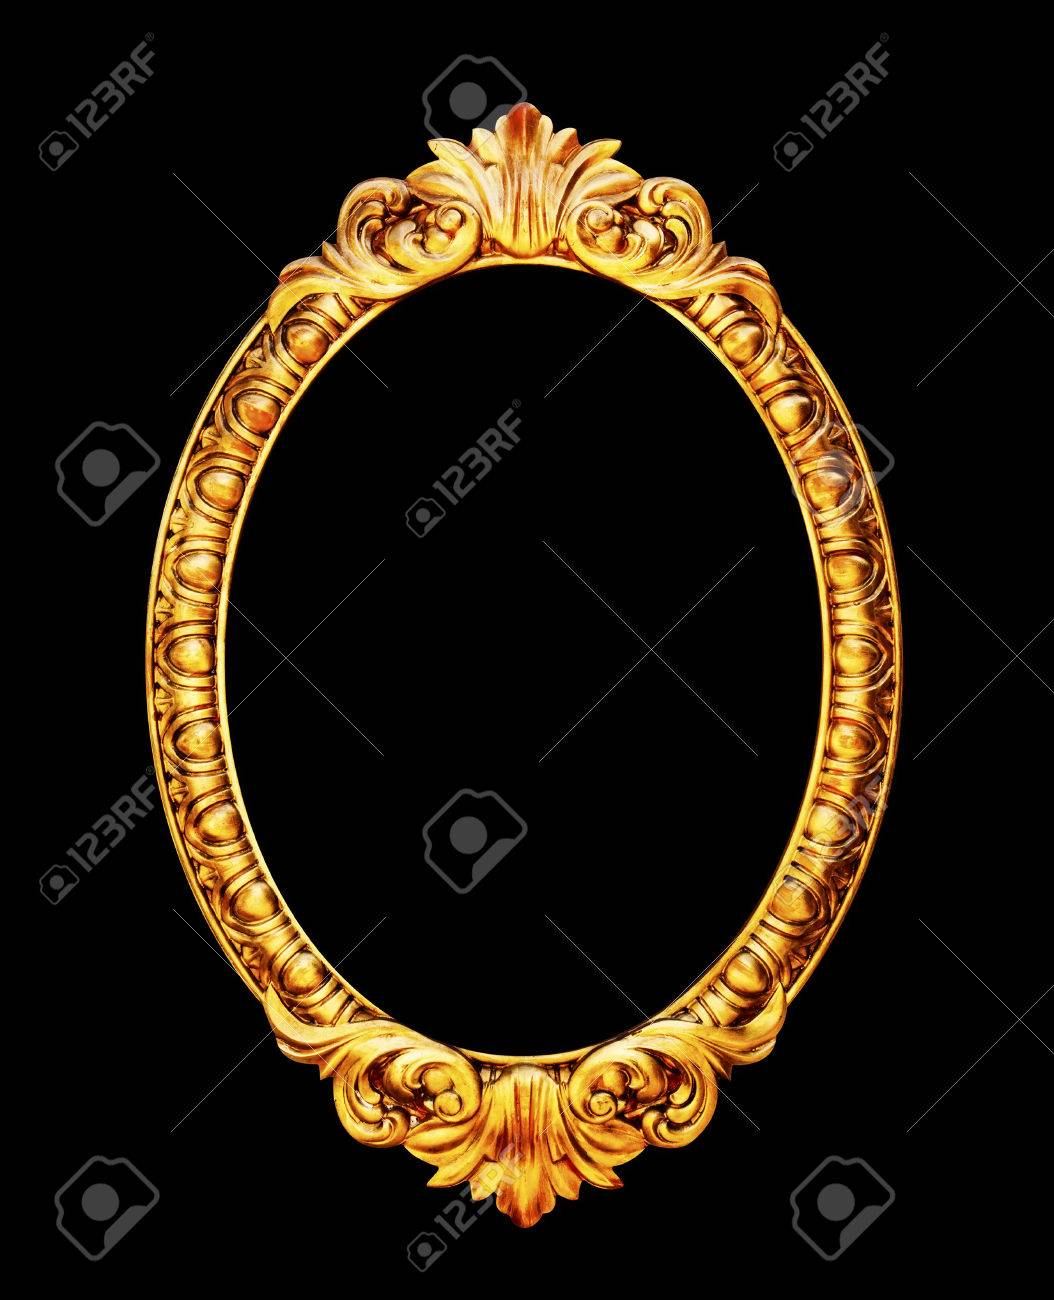 antique oval mirror frame. Oval Mirror Frame. Old Frame Photo Isolated On Black Background Stock - 67607845 Antique